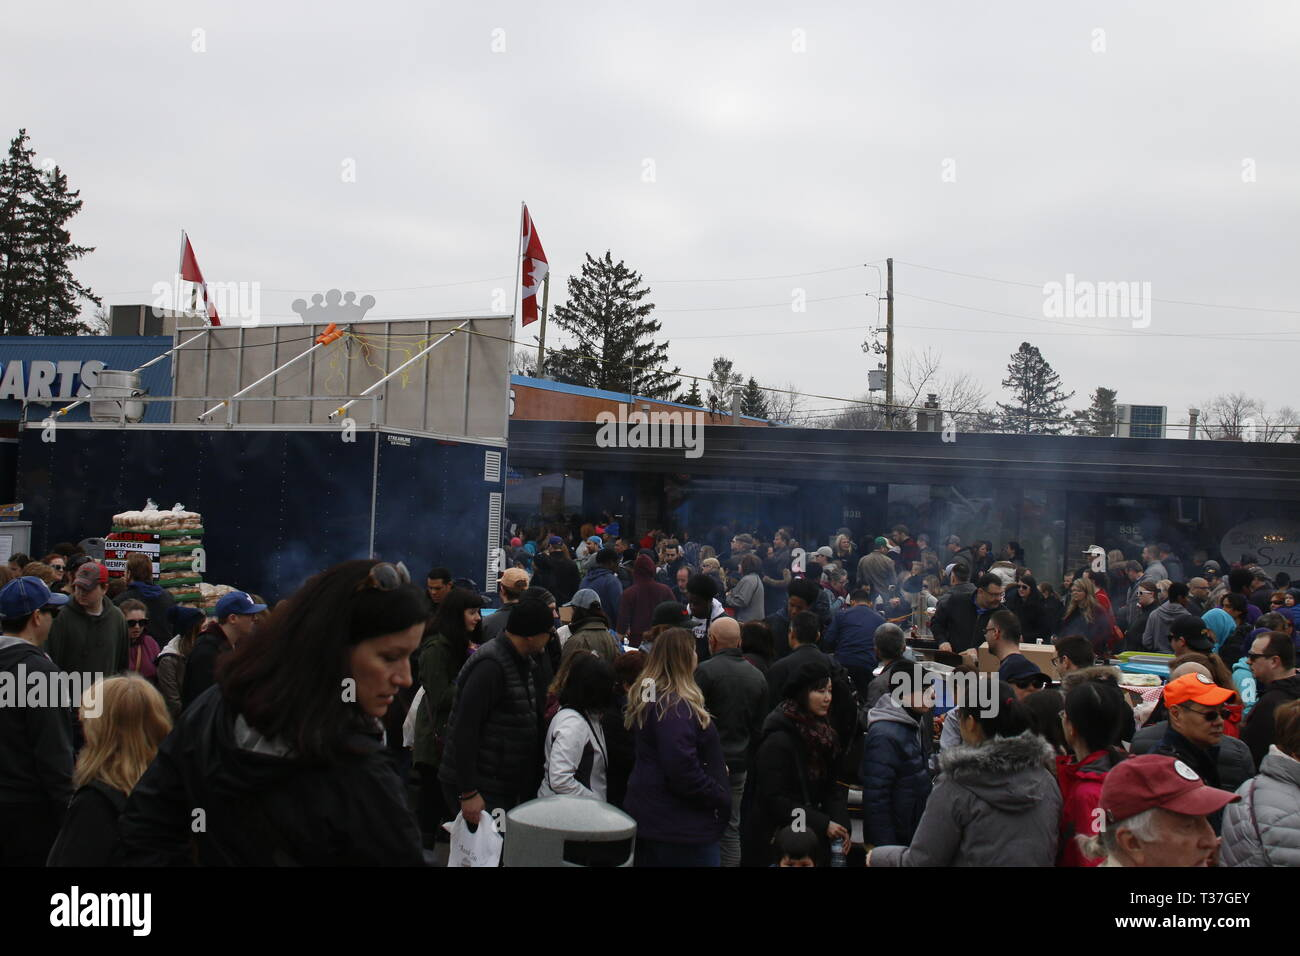 Elmira Canada, April 06 2019: editorial photograph of crowds of people at the Elmira Maple Syrup Festival. Photo showing the worlds largest maple - Stock Image